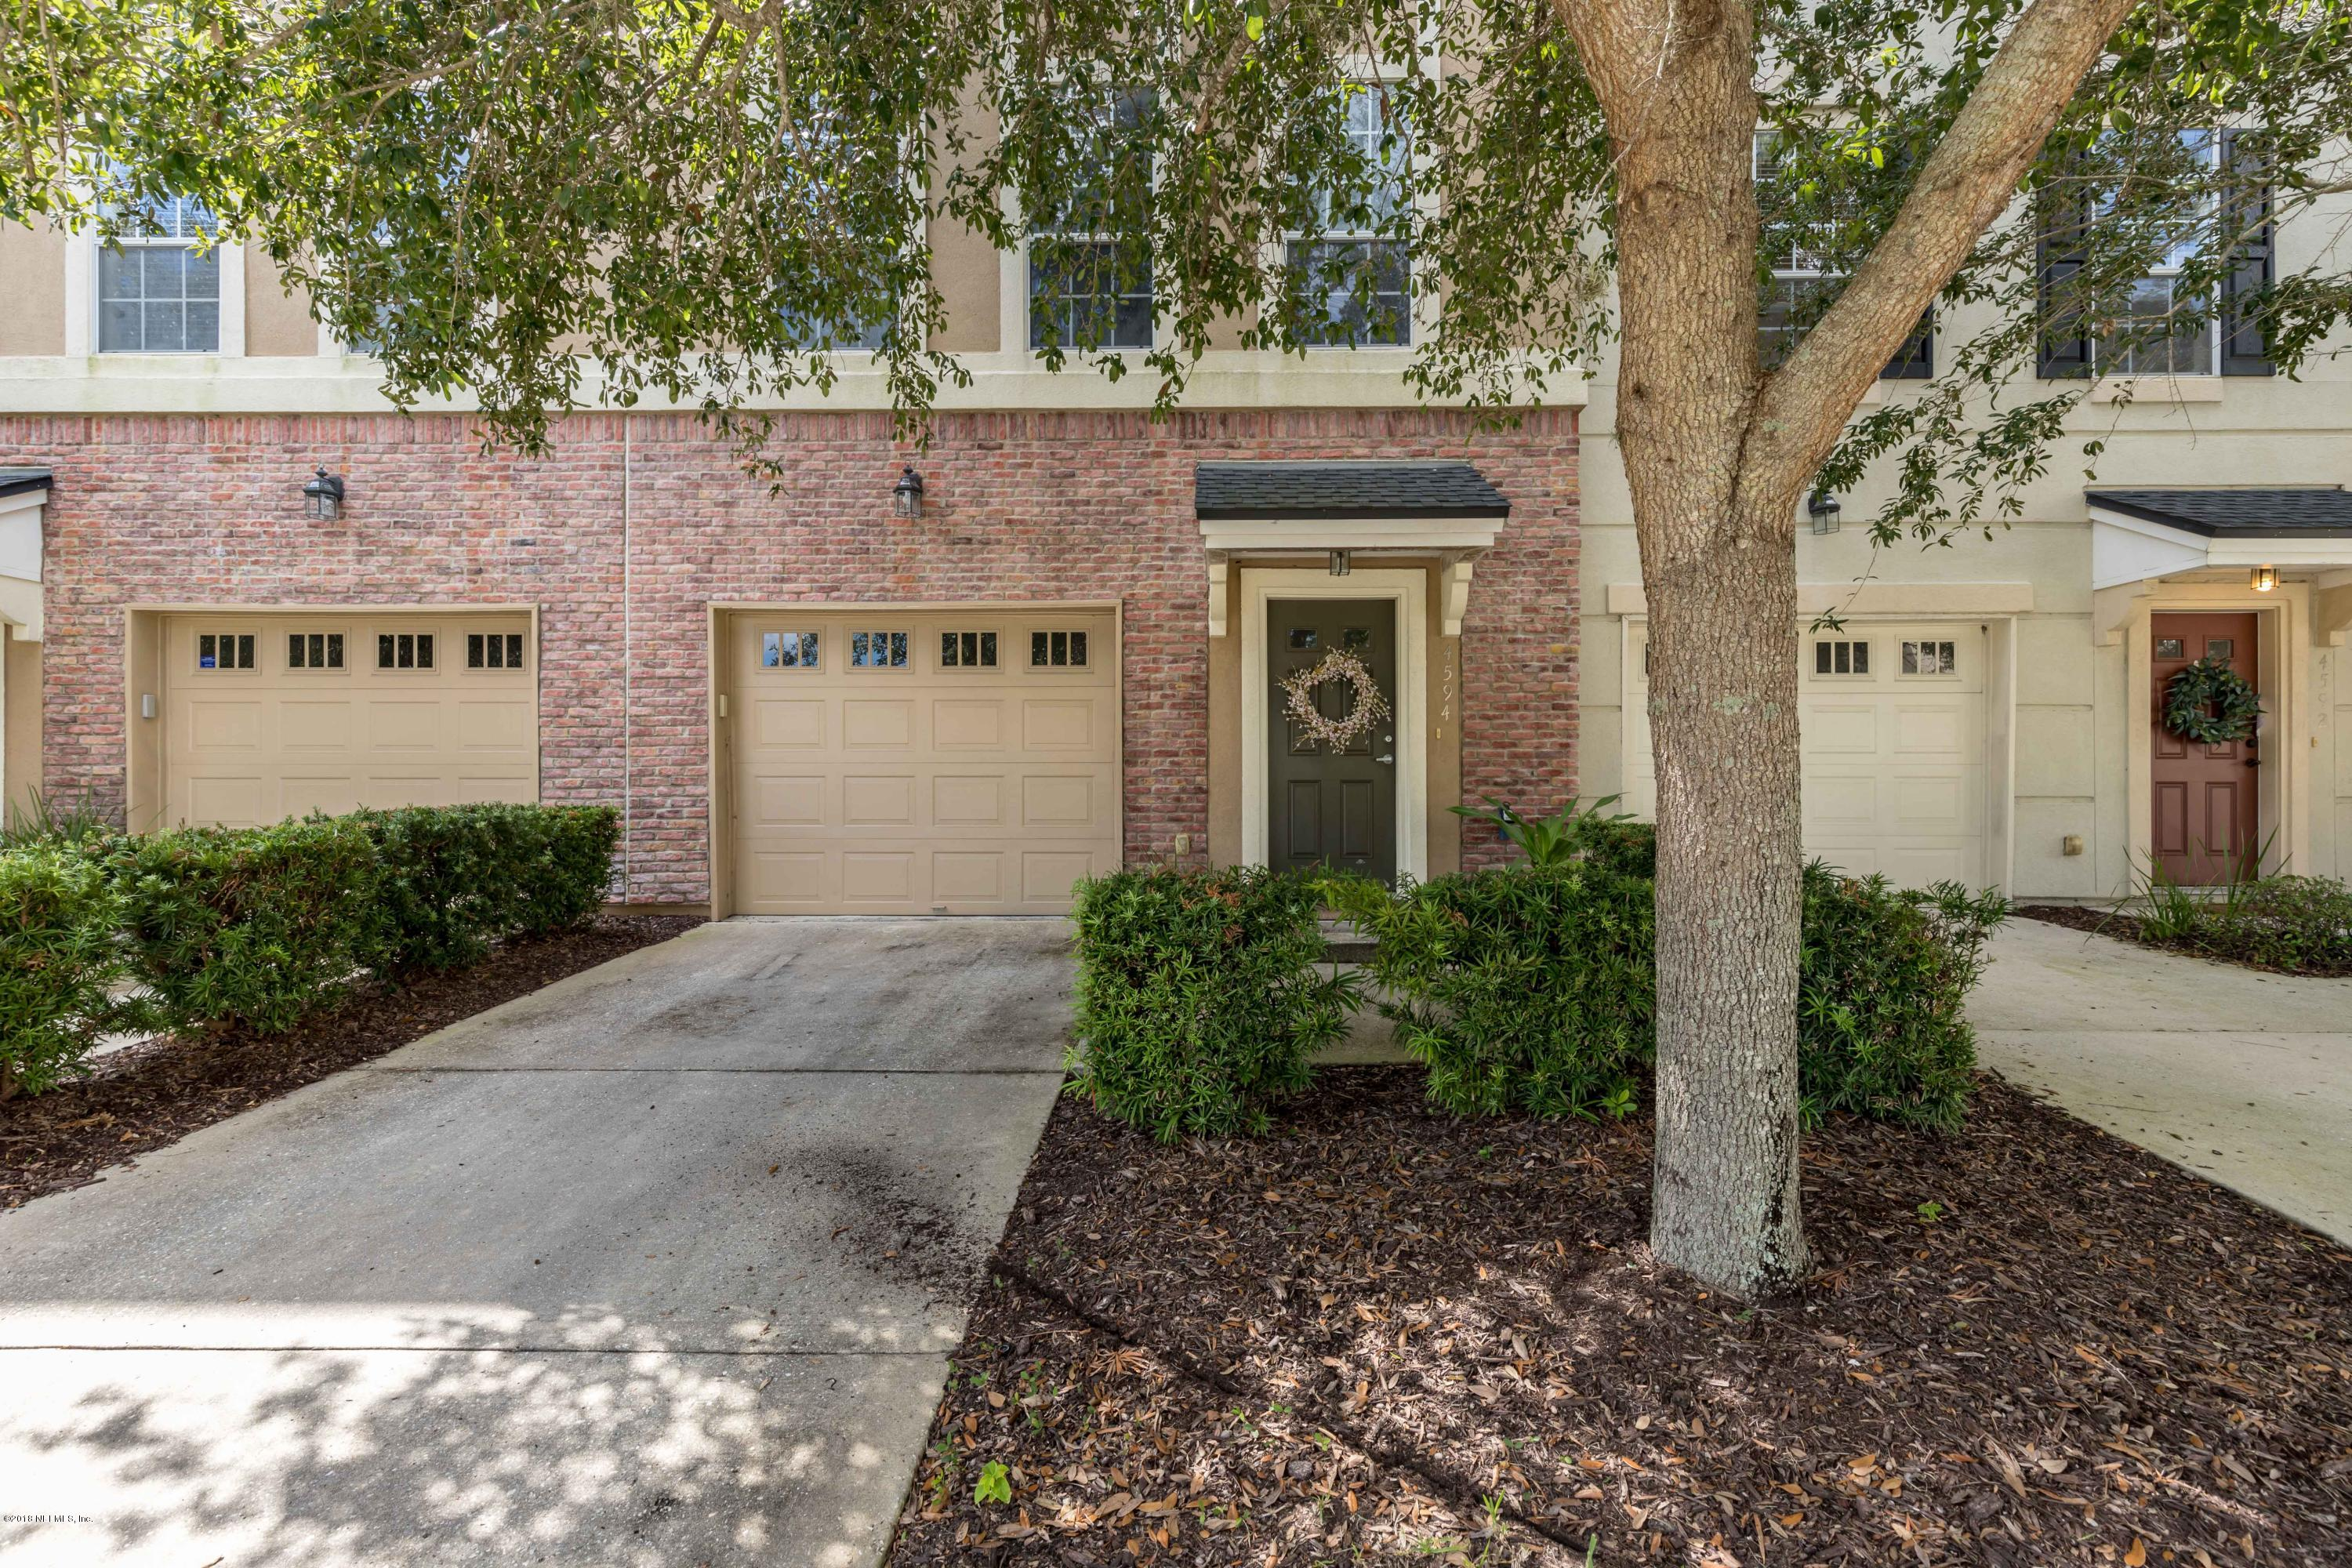 4594 CAPITAL DOME, JACKSONVILLE, FLORIDA 32246, 3 Bedrooms Bedrooms, ,2 BathroomsBathrooms,Residential - townhome,For sale,CAPITAL DOME,961484